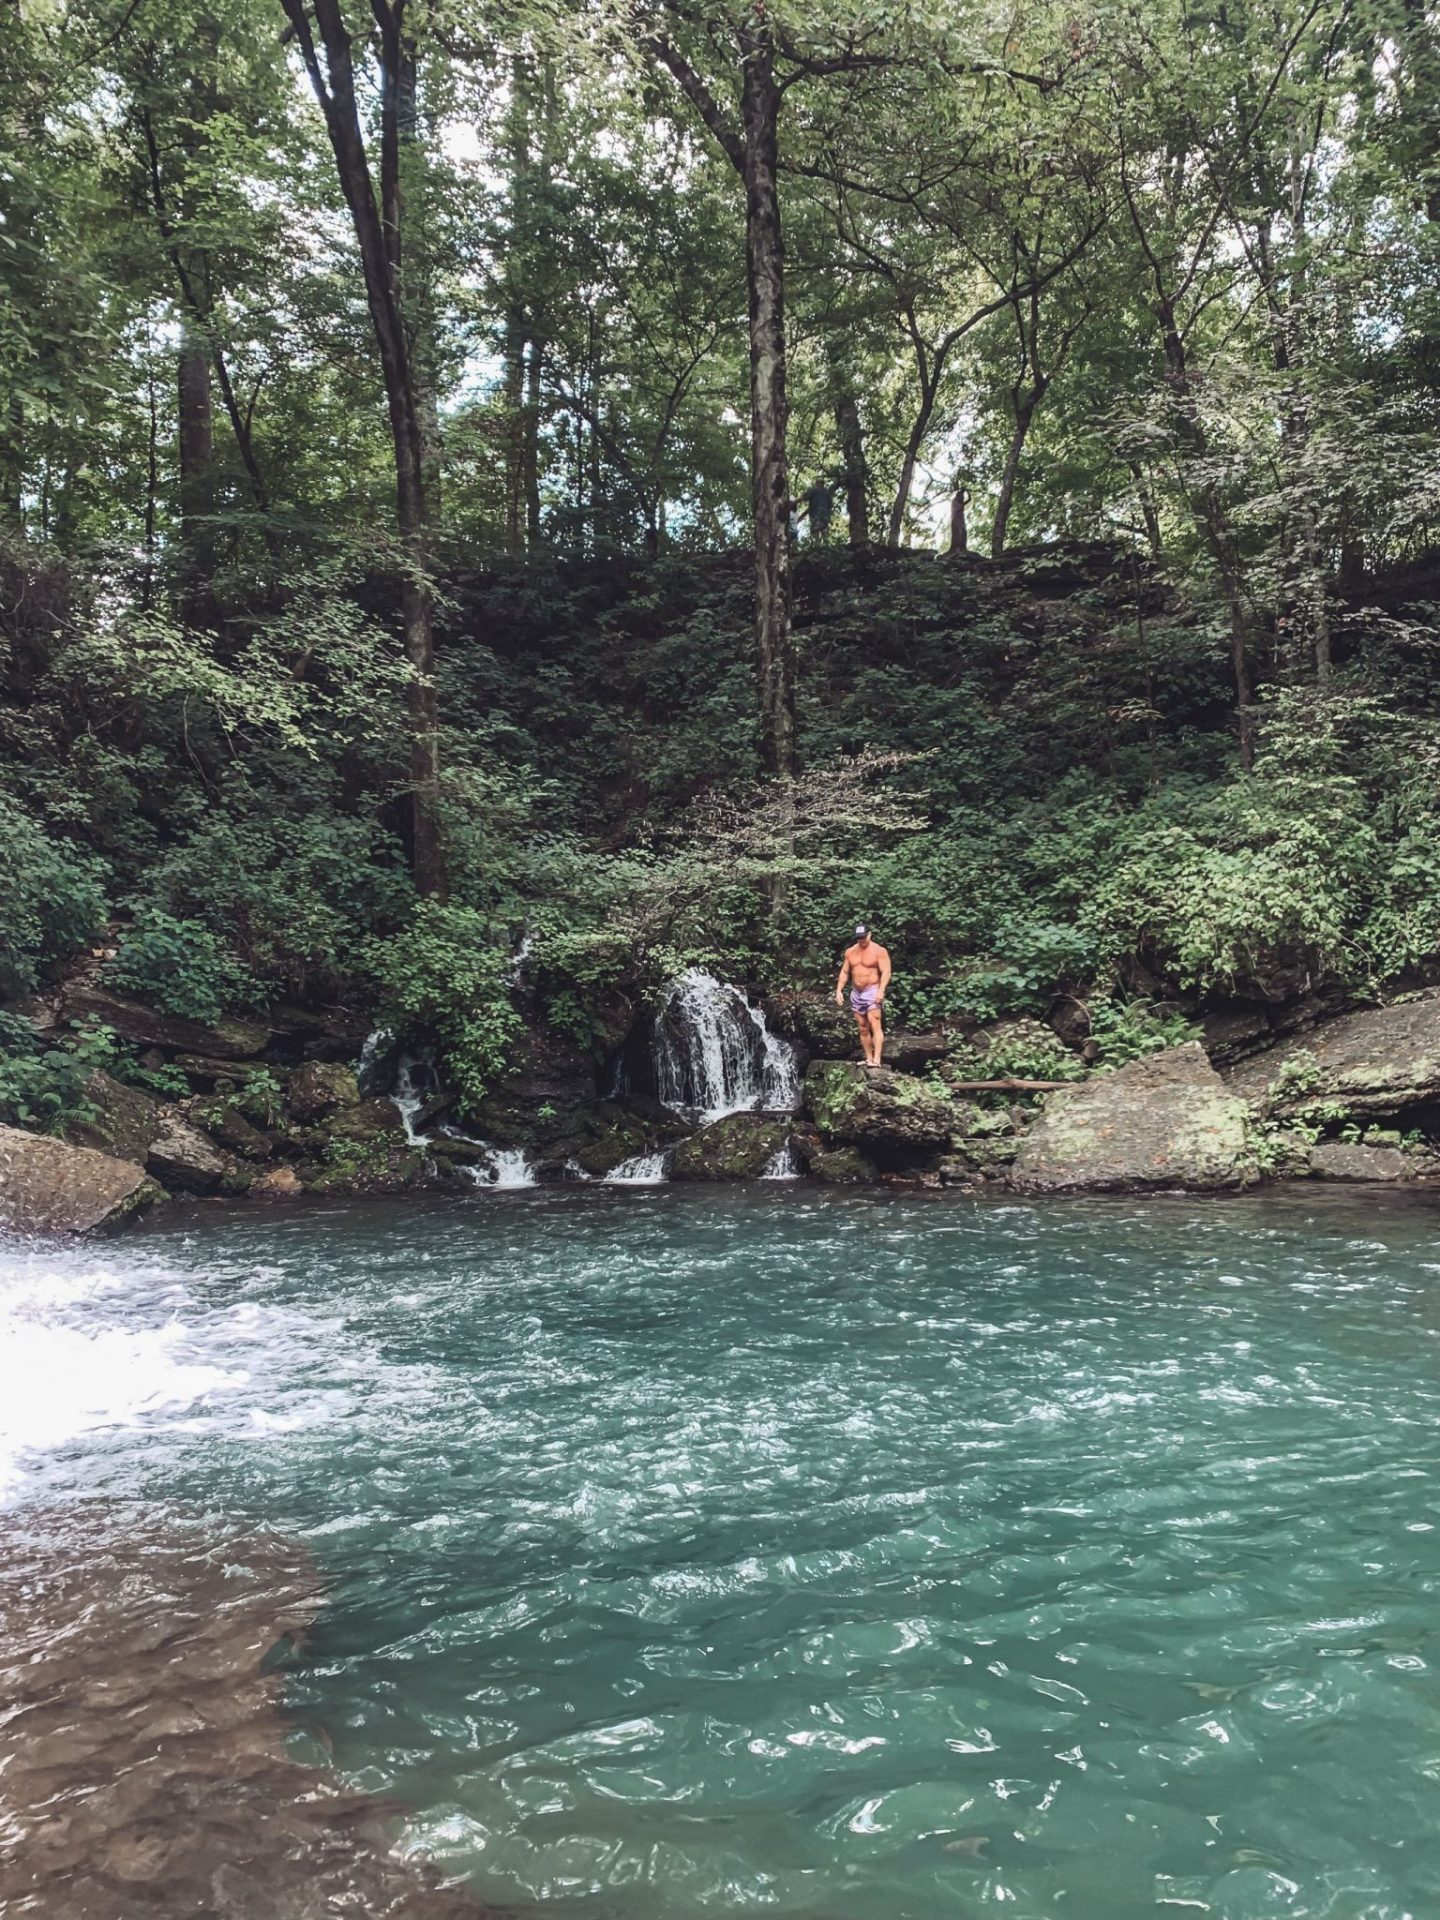 Family-Friendly Waterfall Hiking Trails in Nashville, TN by popular Nashville blog, Modern Day Moguls: image of a man standing on a rock next to Rutledge Falls in Tullahoma, TN.